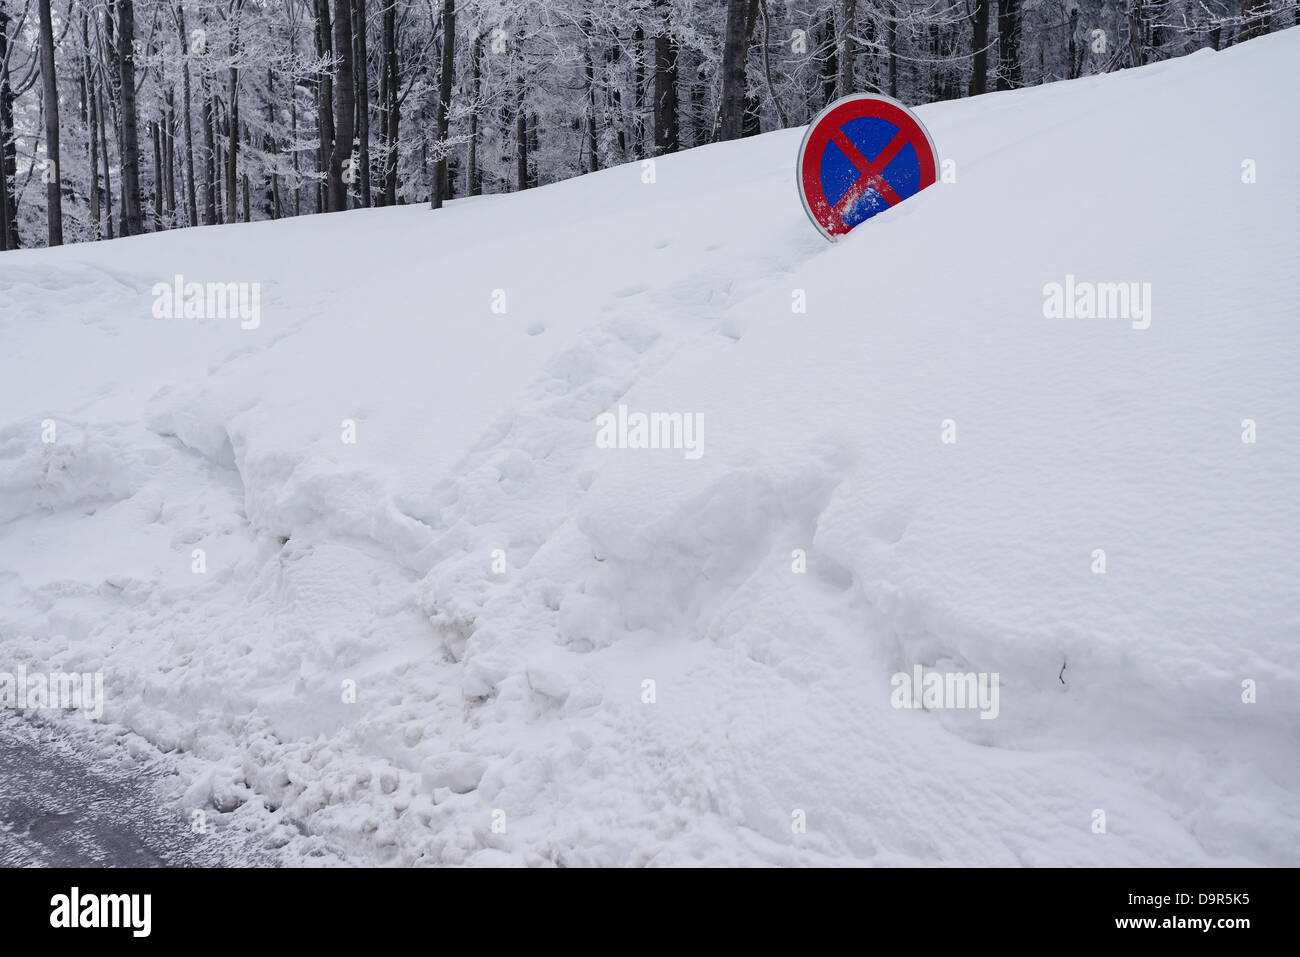 A road sign almost covered in a snowdrift, - Stock Image